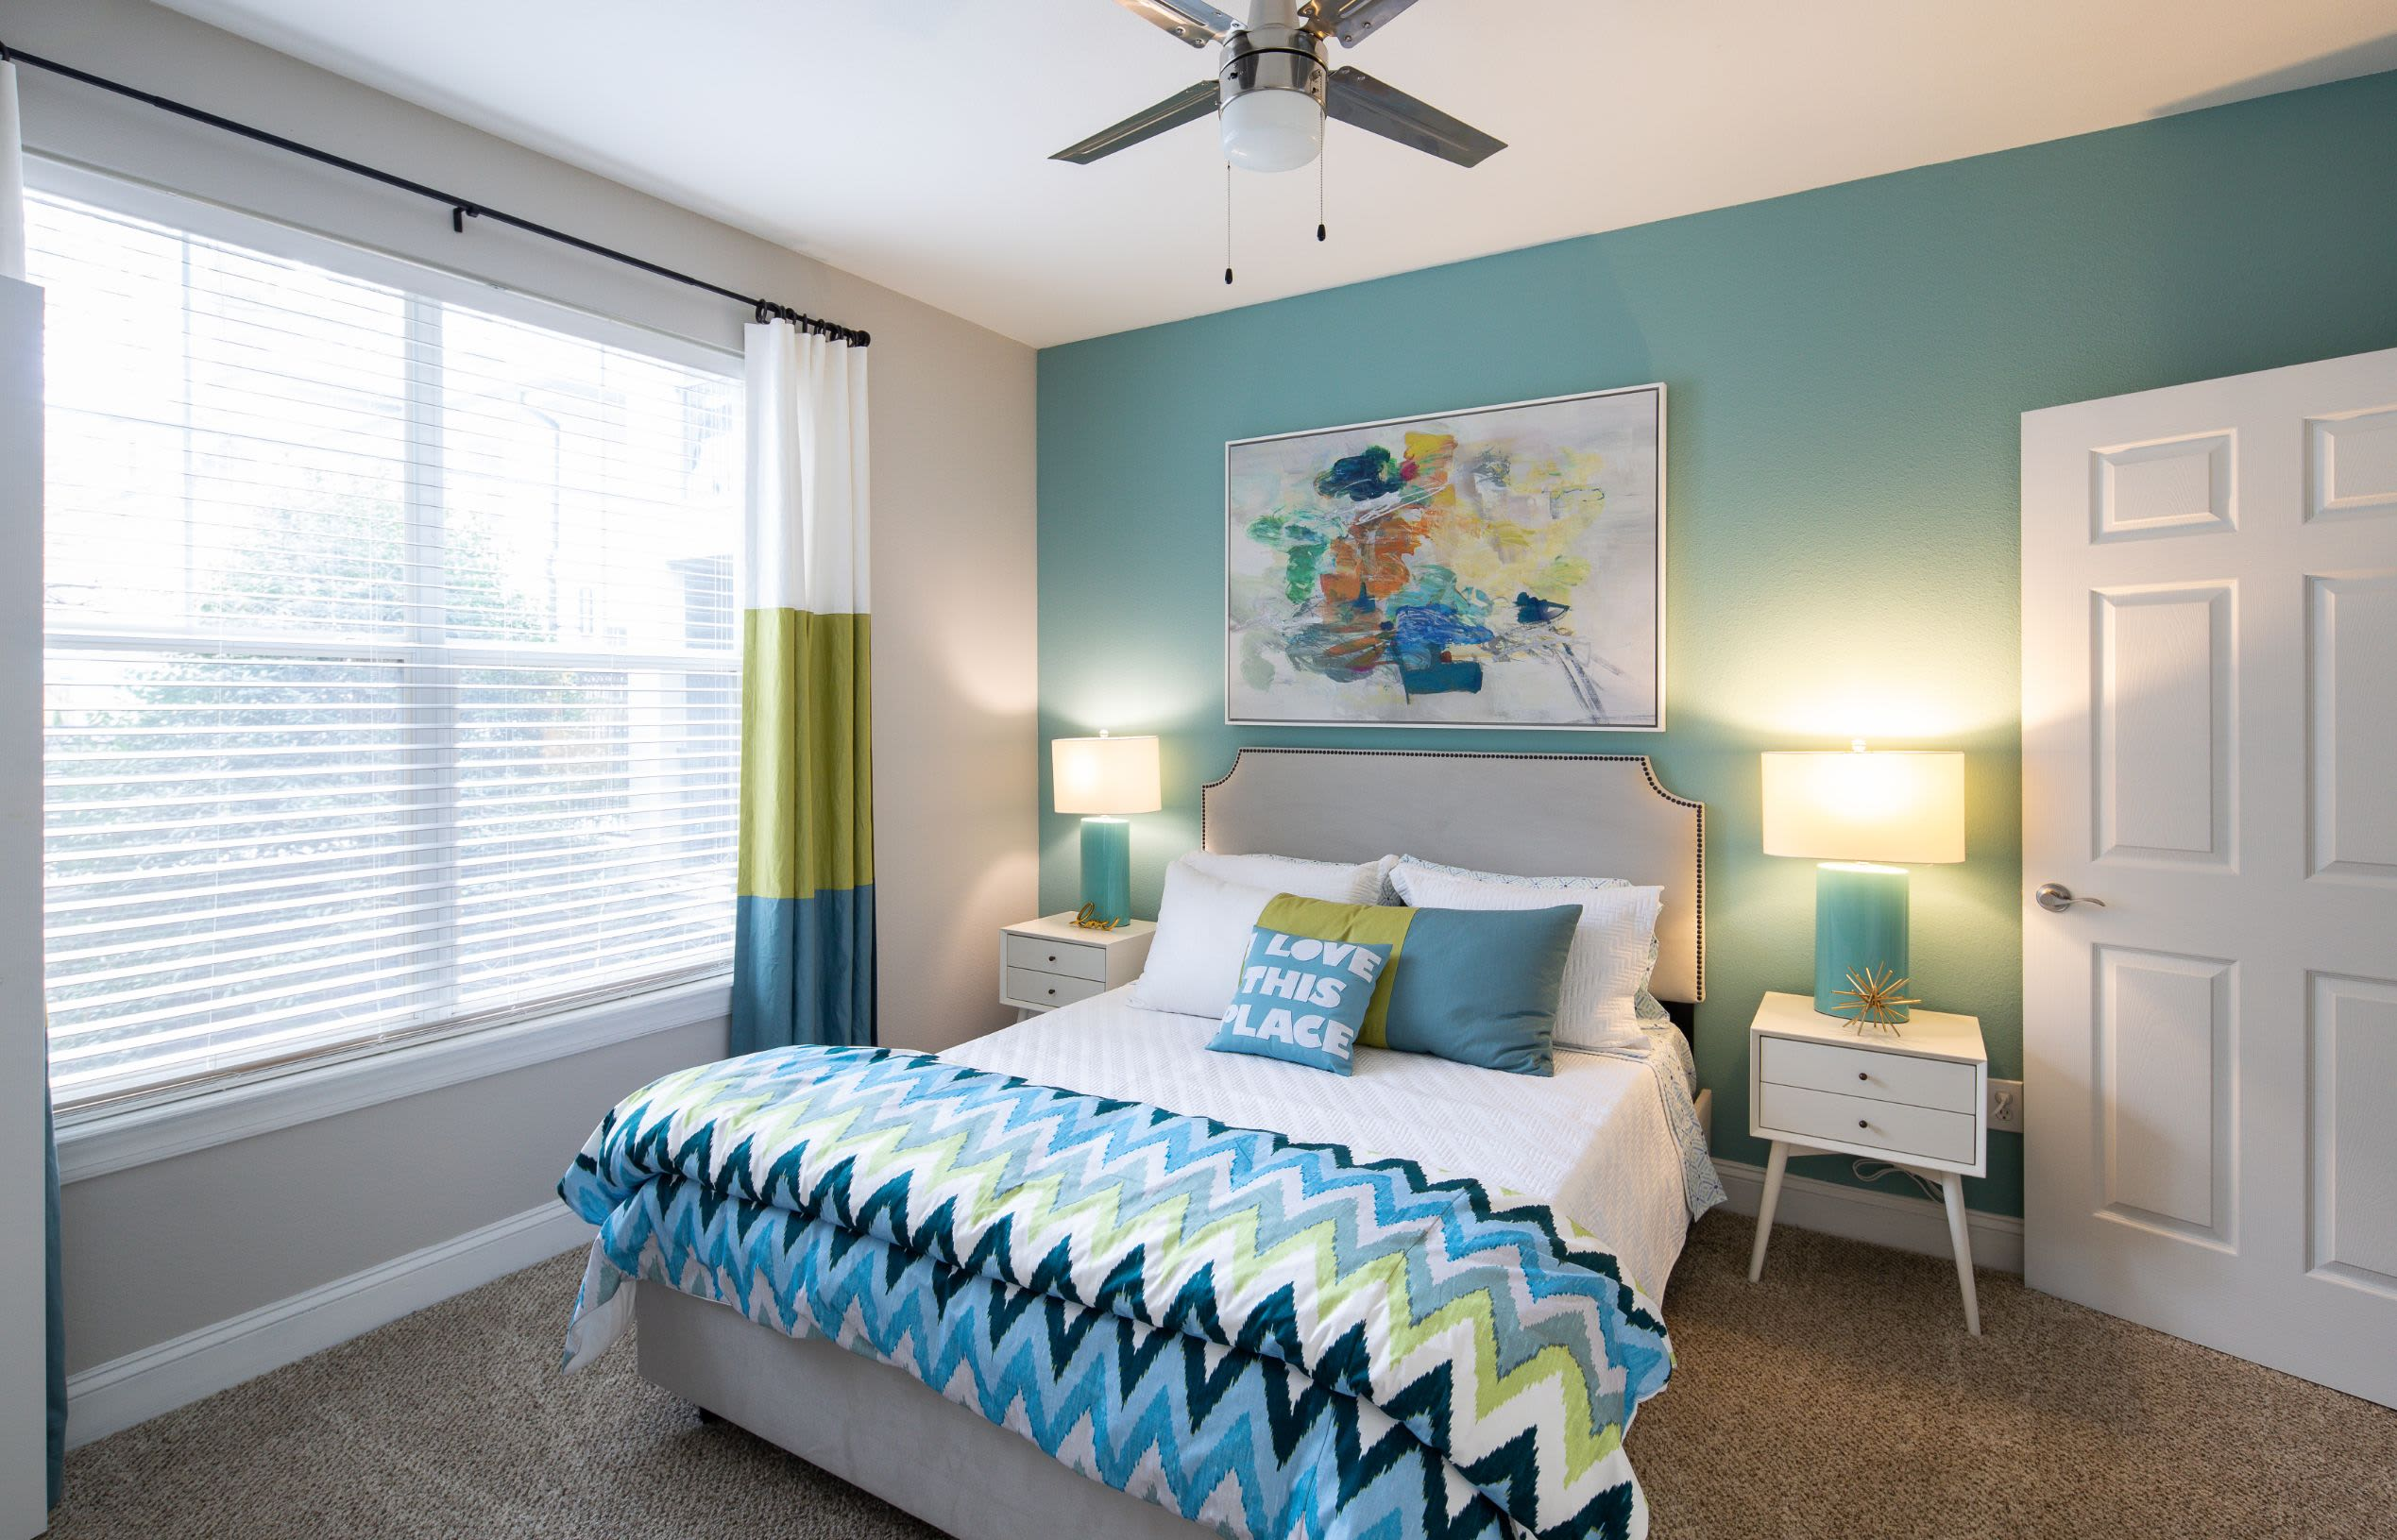 Spacious bedroom with large windows and a ceiling fan at Marq Perimeter in Atlanta, Georgia